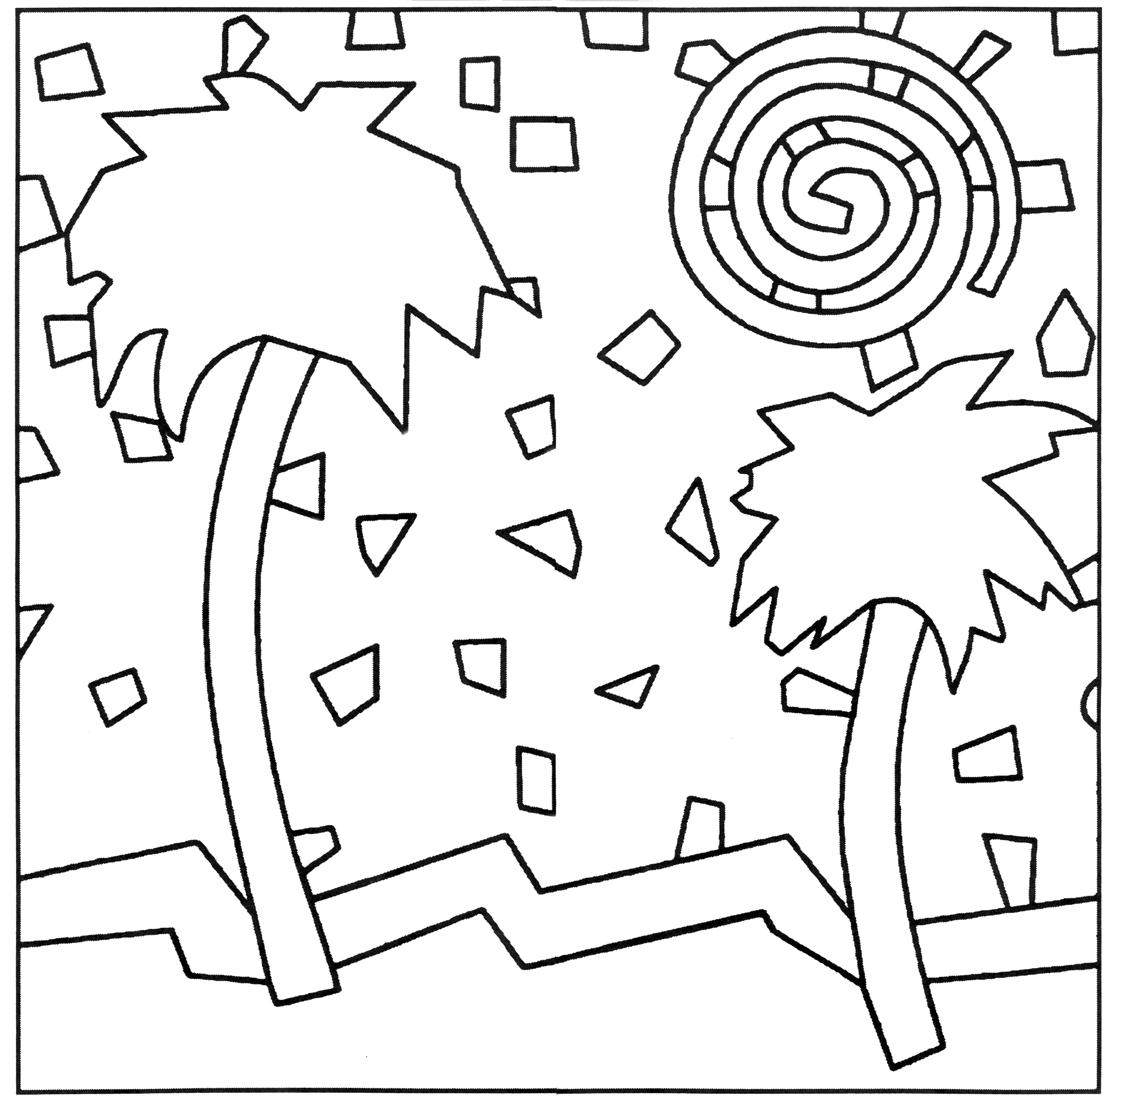 1125x1098 Pattern Simple Mosaic Coloring Pages